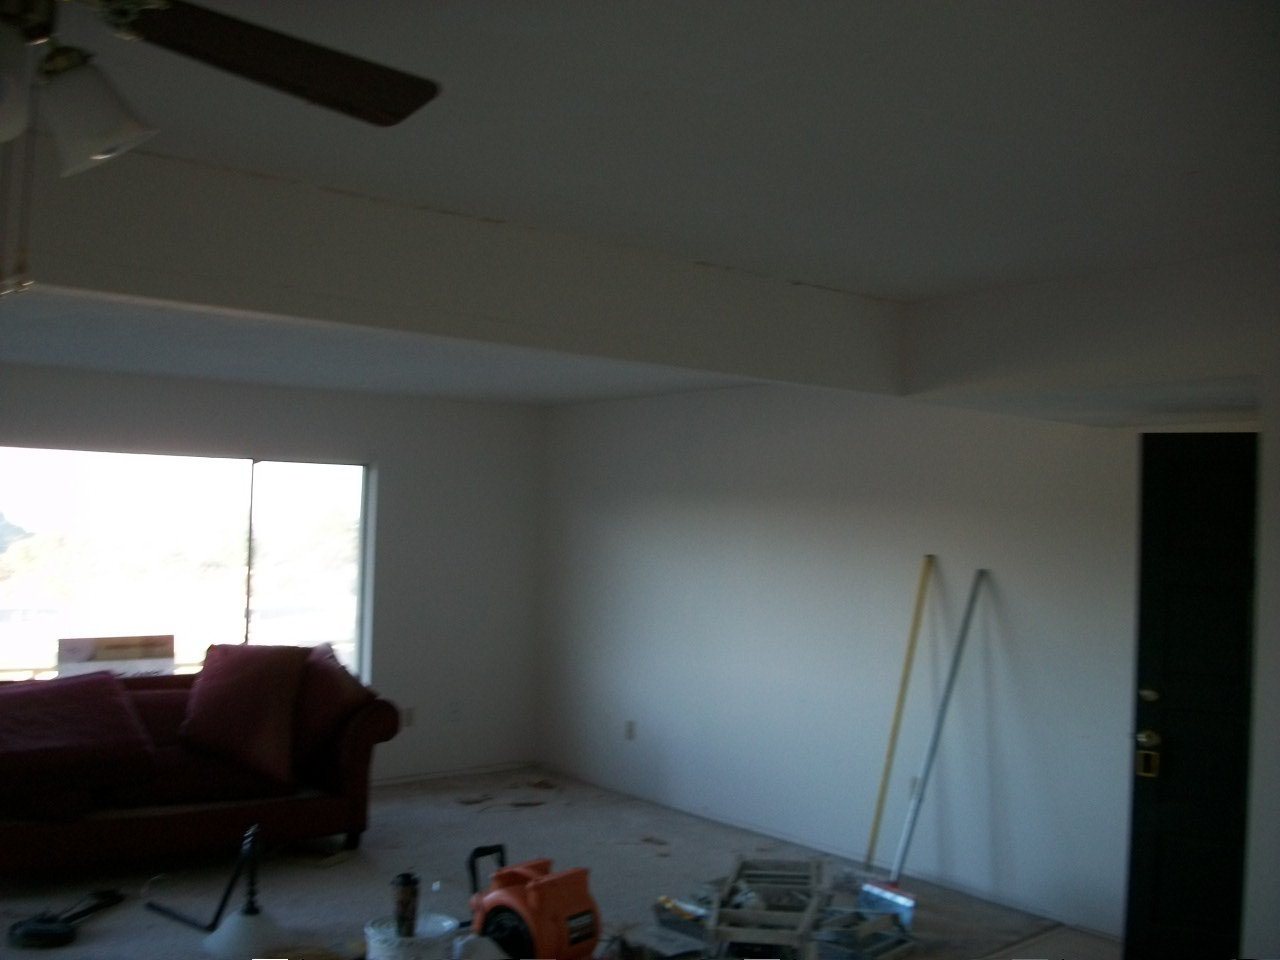 house painter san diego asks have you picked a color